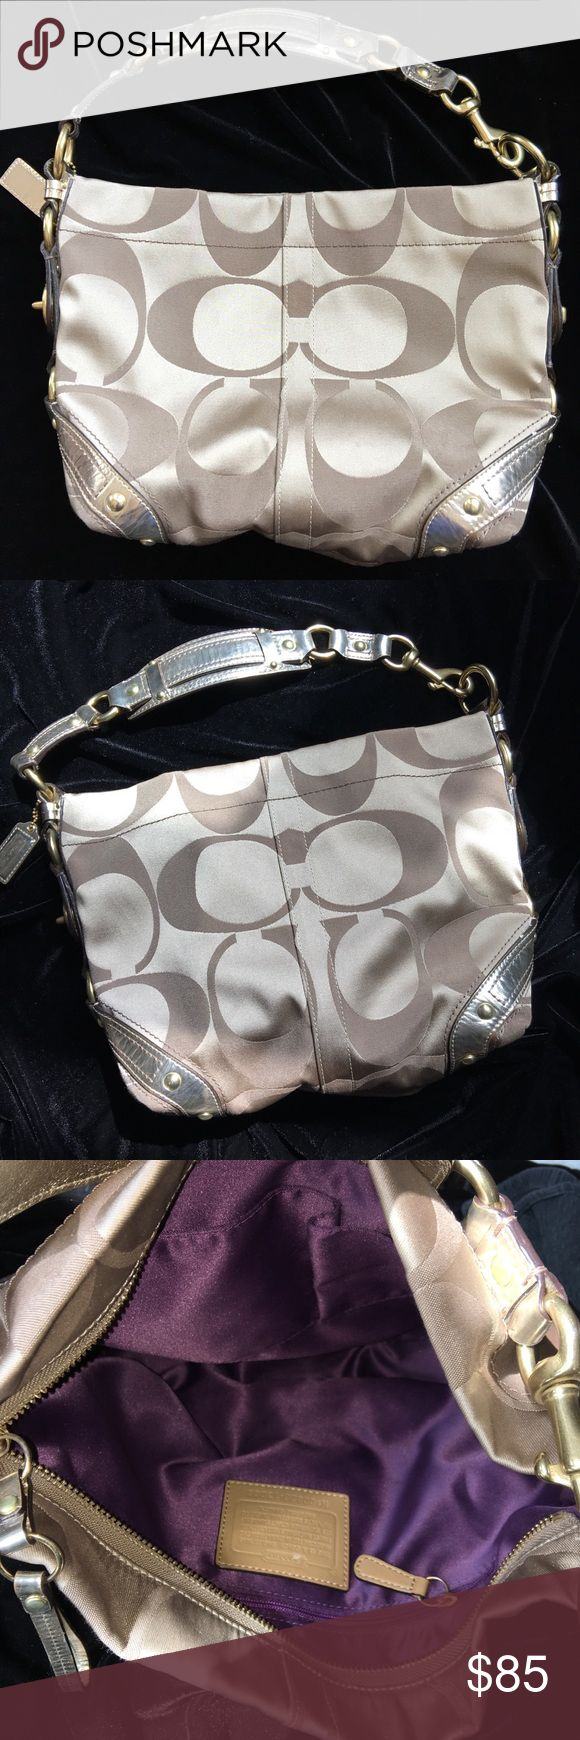 Coach Hobo Purse in Metallic Gold & Tan Beautiful Coach hobo bag, barely worn. There is one small scuff on the interior Coach label which is shown in the picture but the inside is nice and clean. Coach Bags Hobos